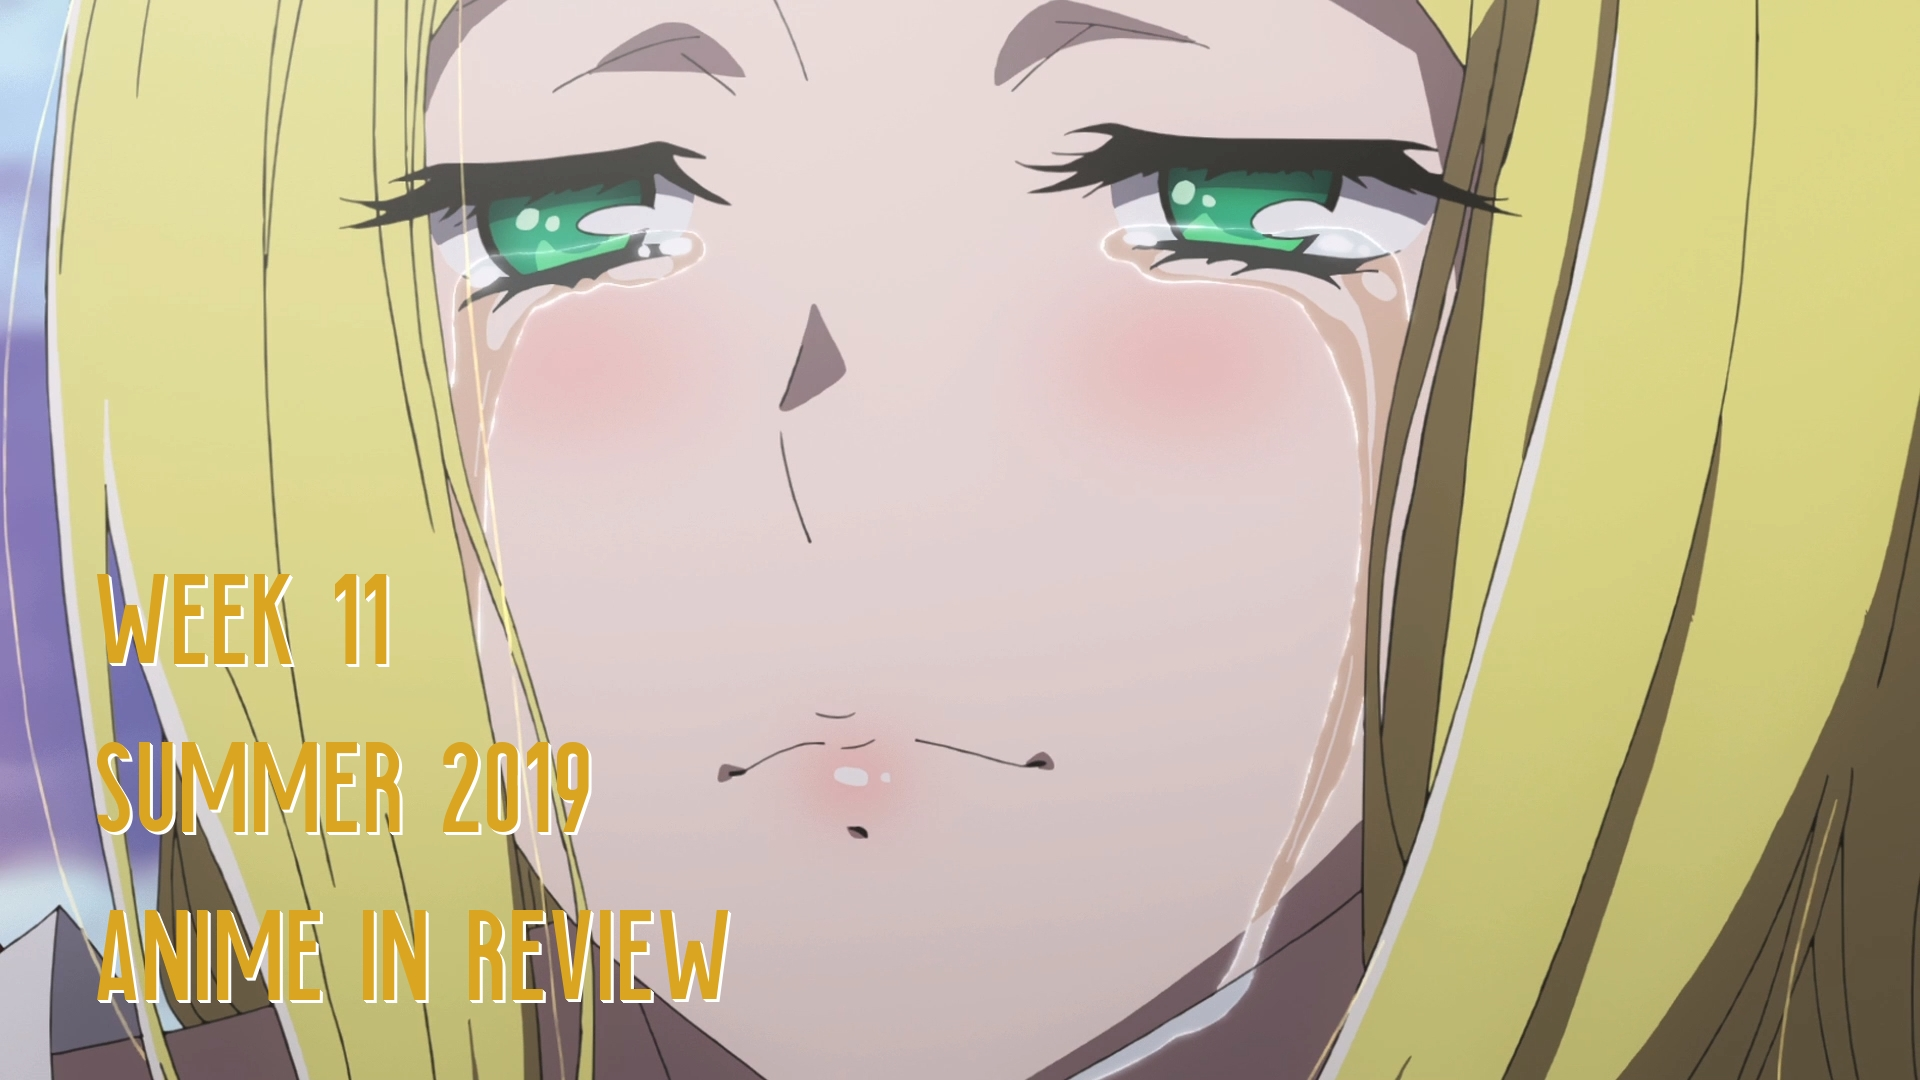 Week 11 of Summer 2019 Anime In Review